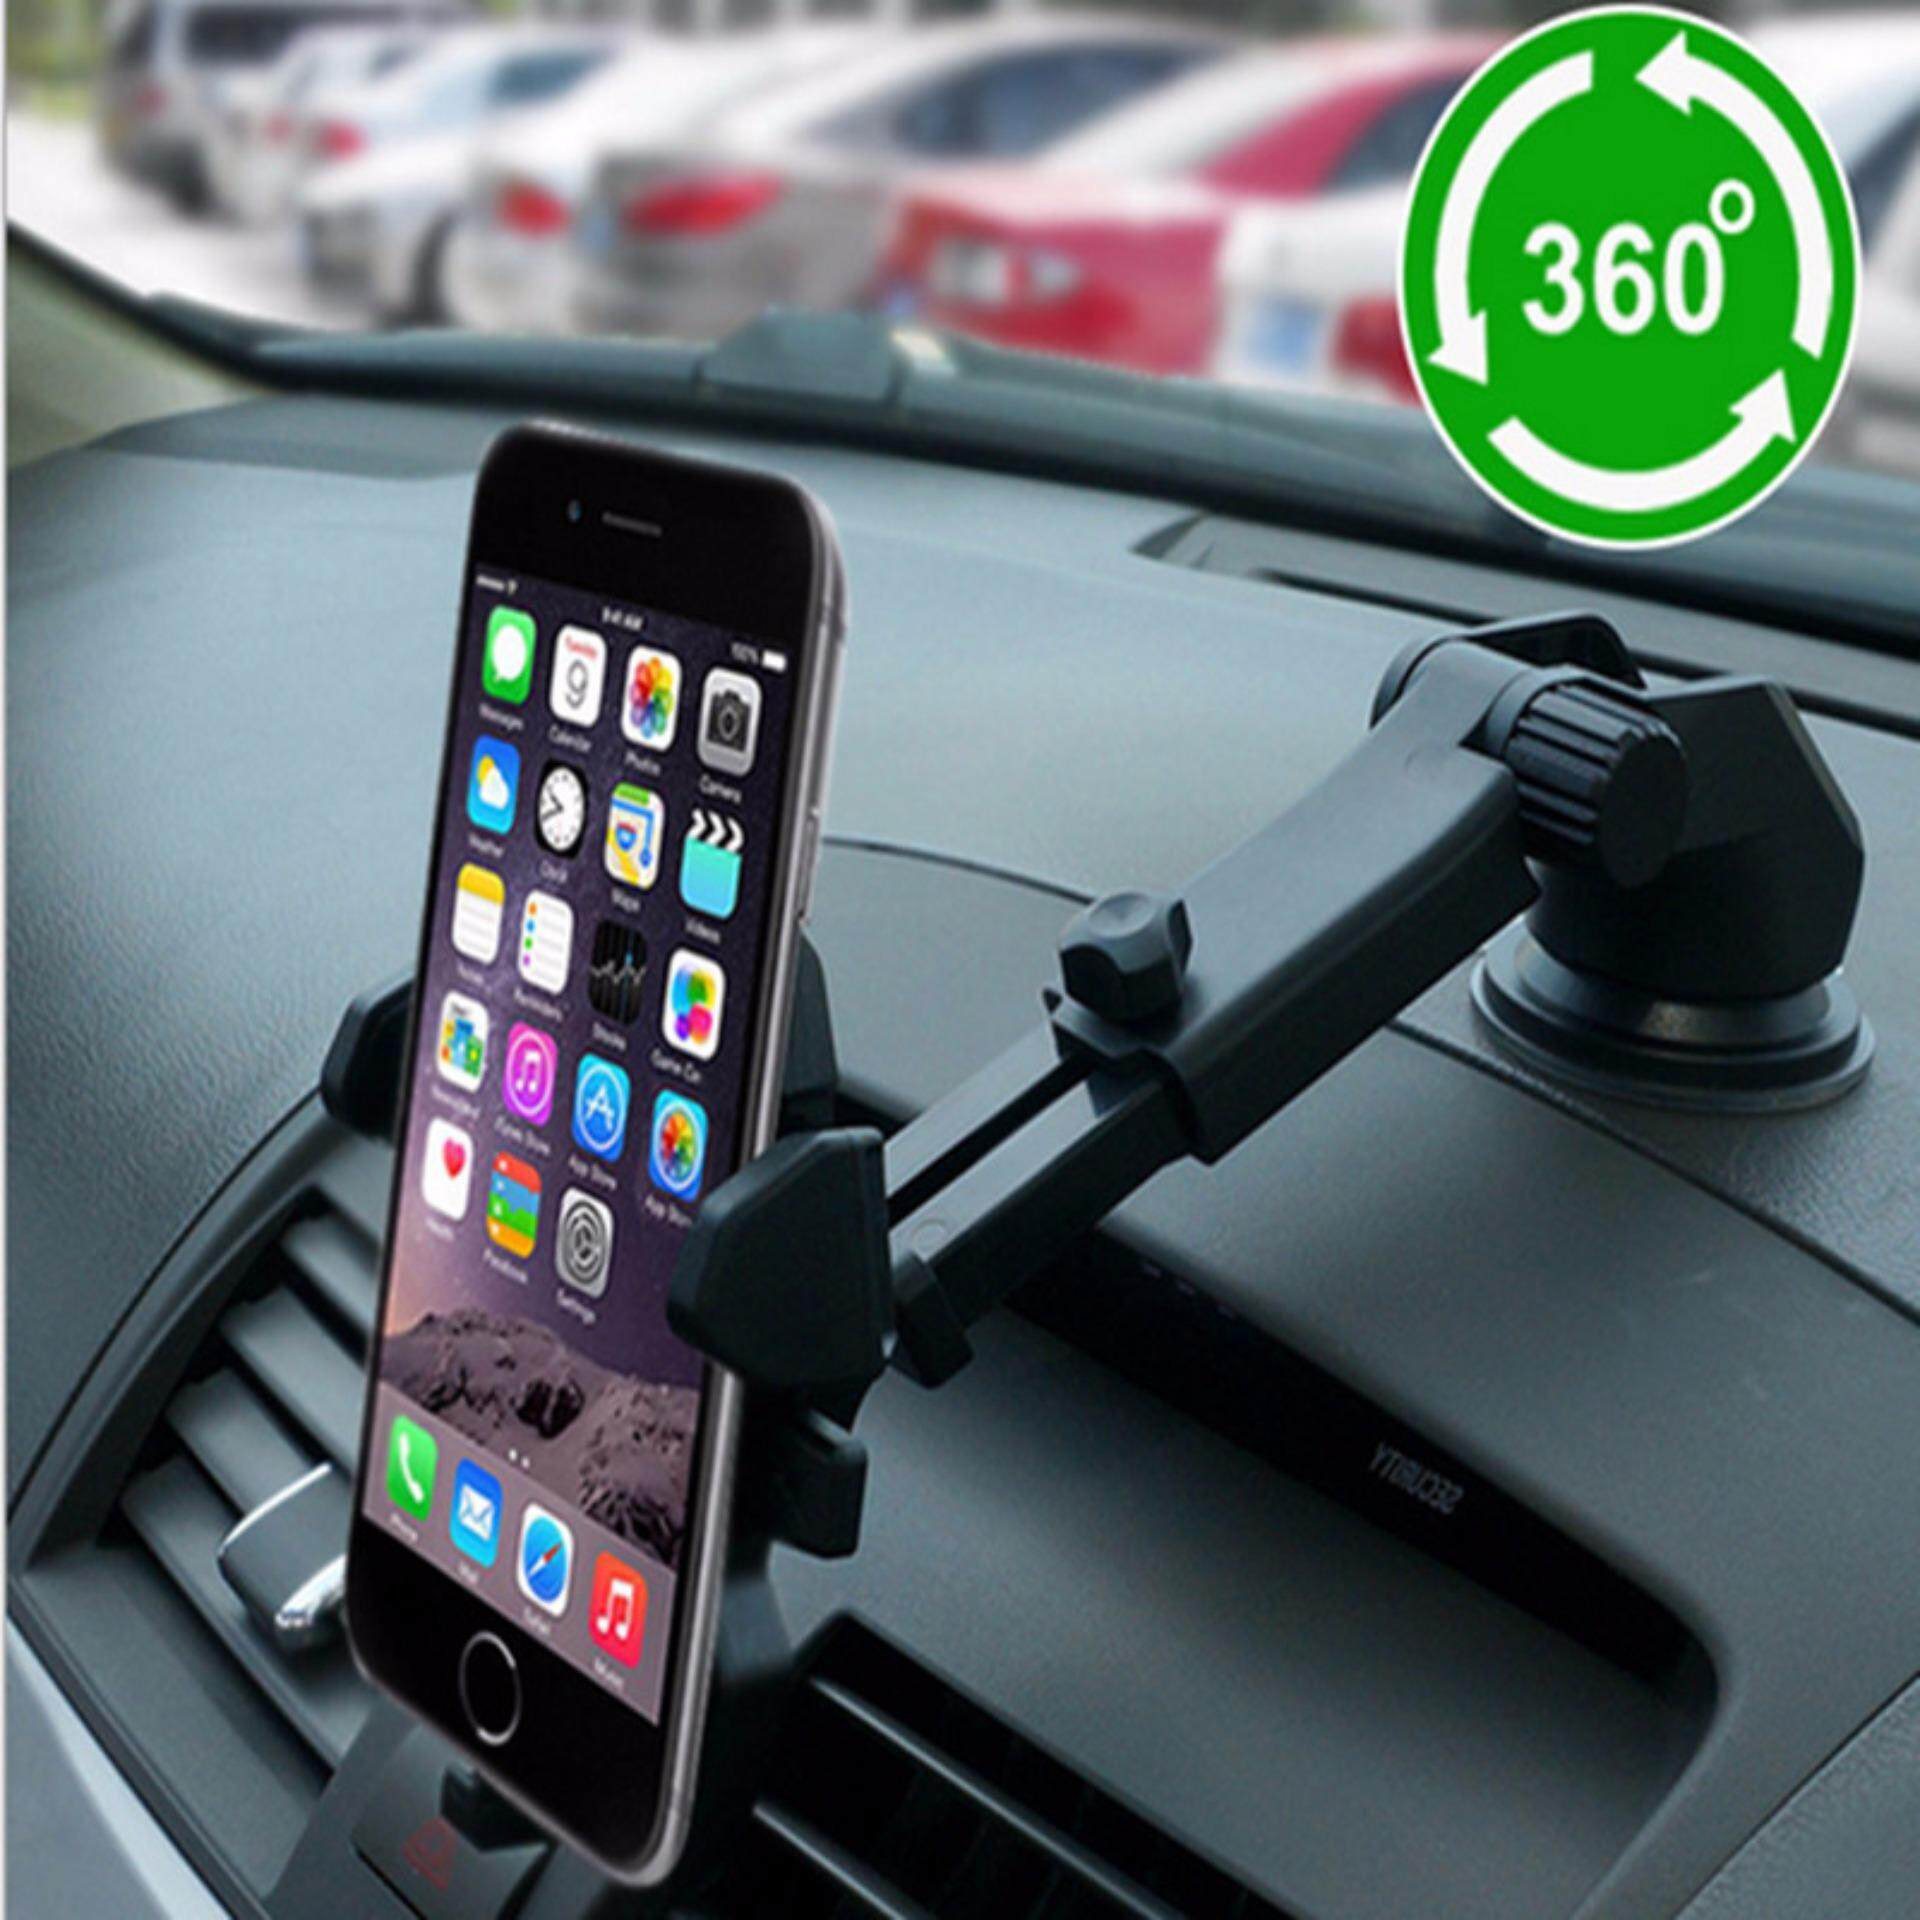 Gps Navigation For Car 10 Inch Screen Price In Singapore